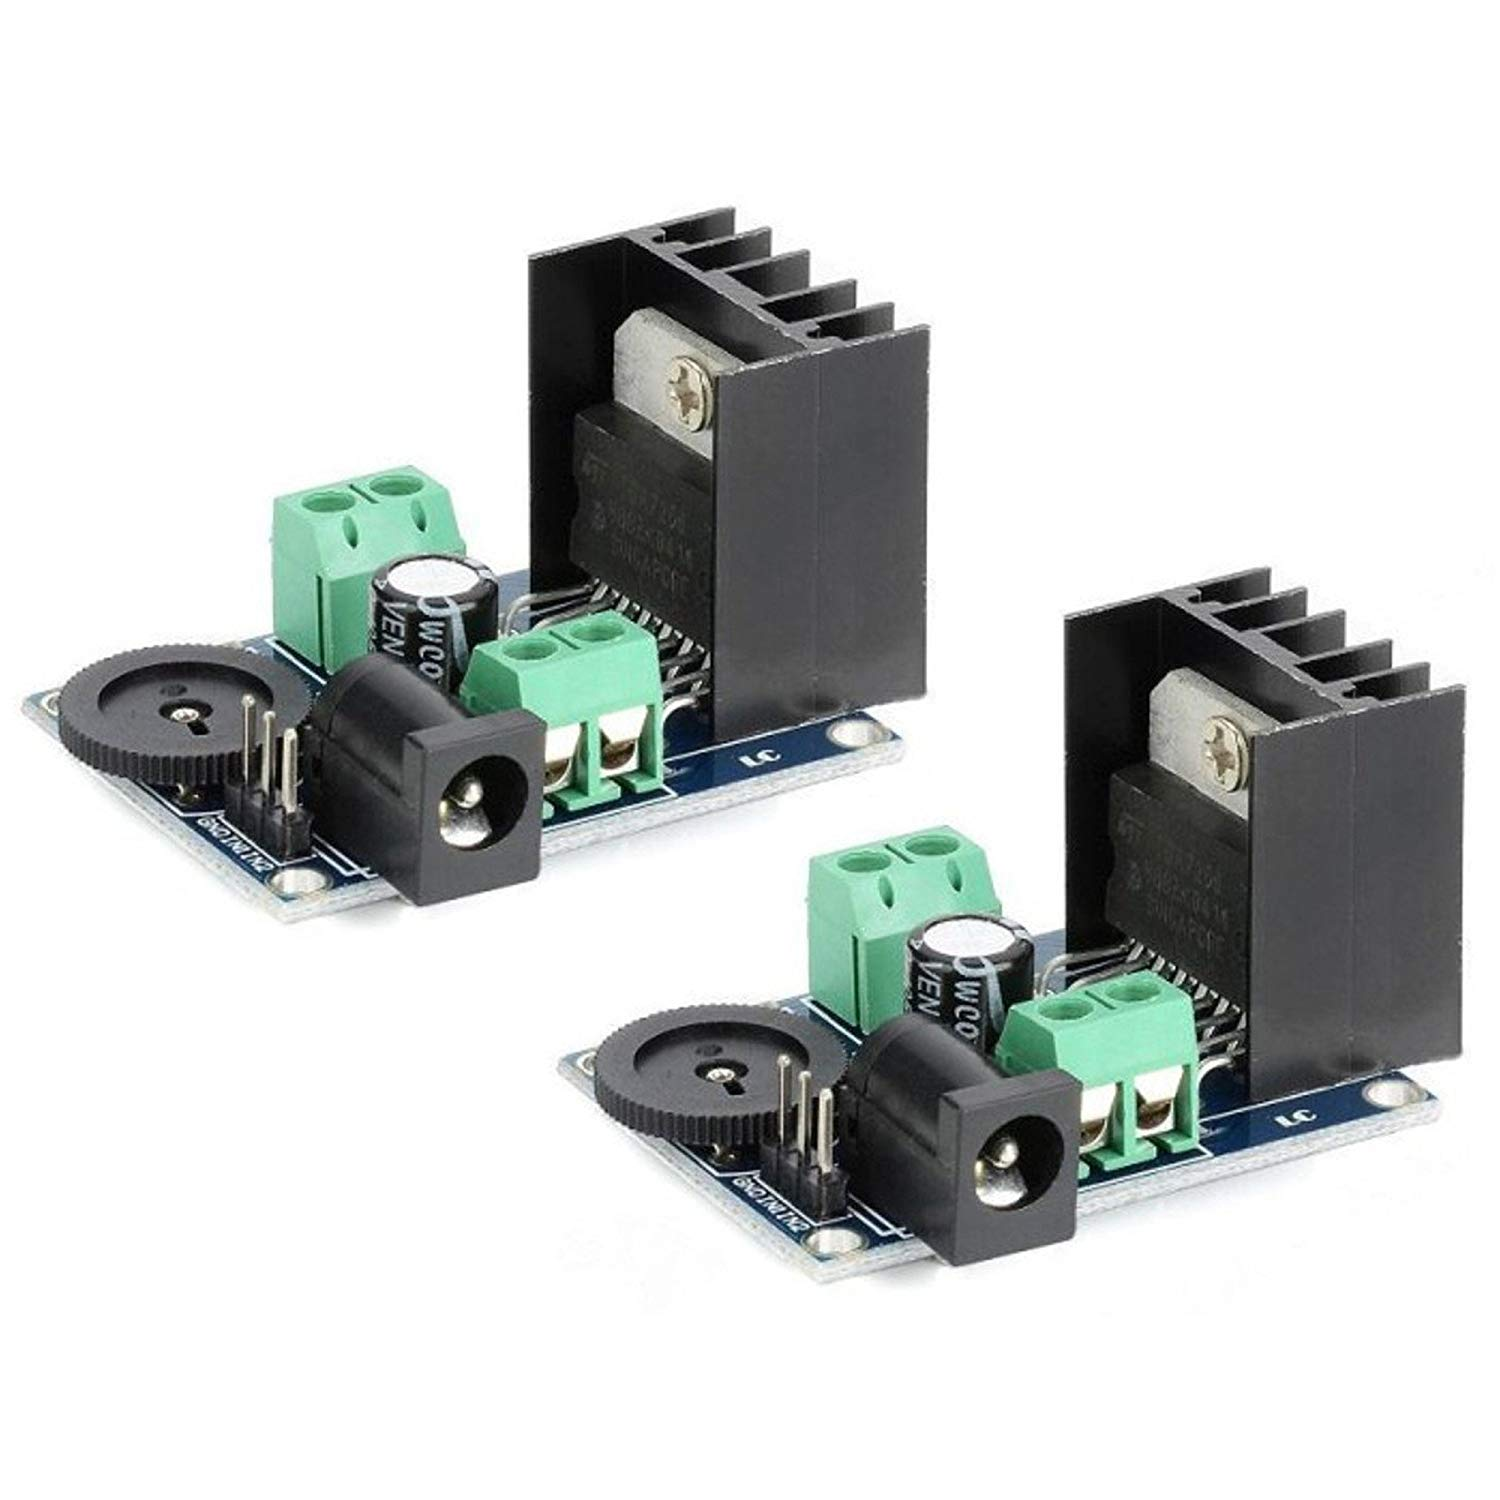 Cheap Tda Audio Ic Find Deals On Line At Alibabacom Wiring Diagram Car Mono Amplifier Using Tda2040 Real Auto Tips Get Quotations Optimus Electric 2pcs Tda7266 Power Module Dual Channel From